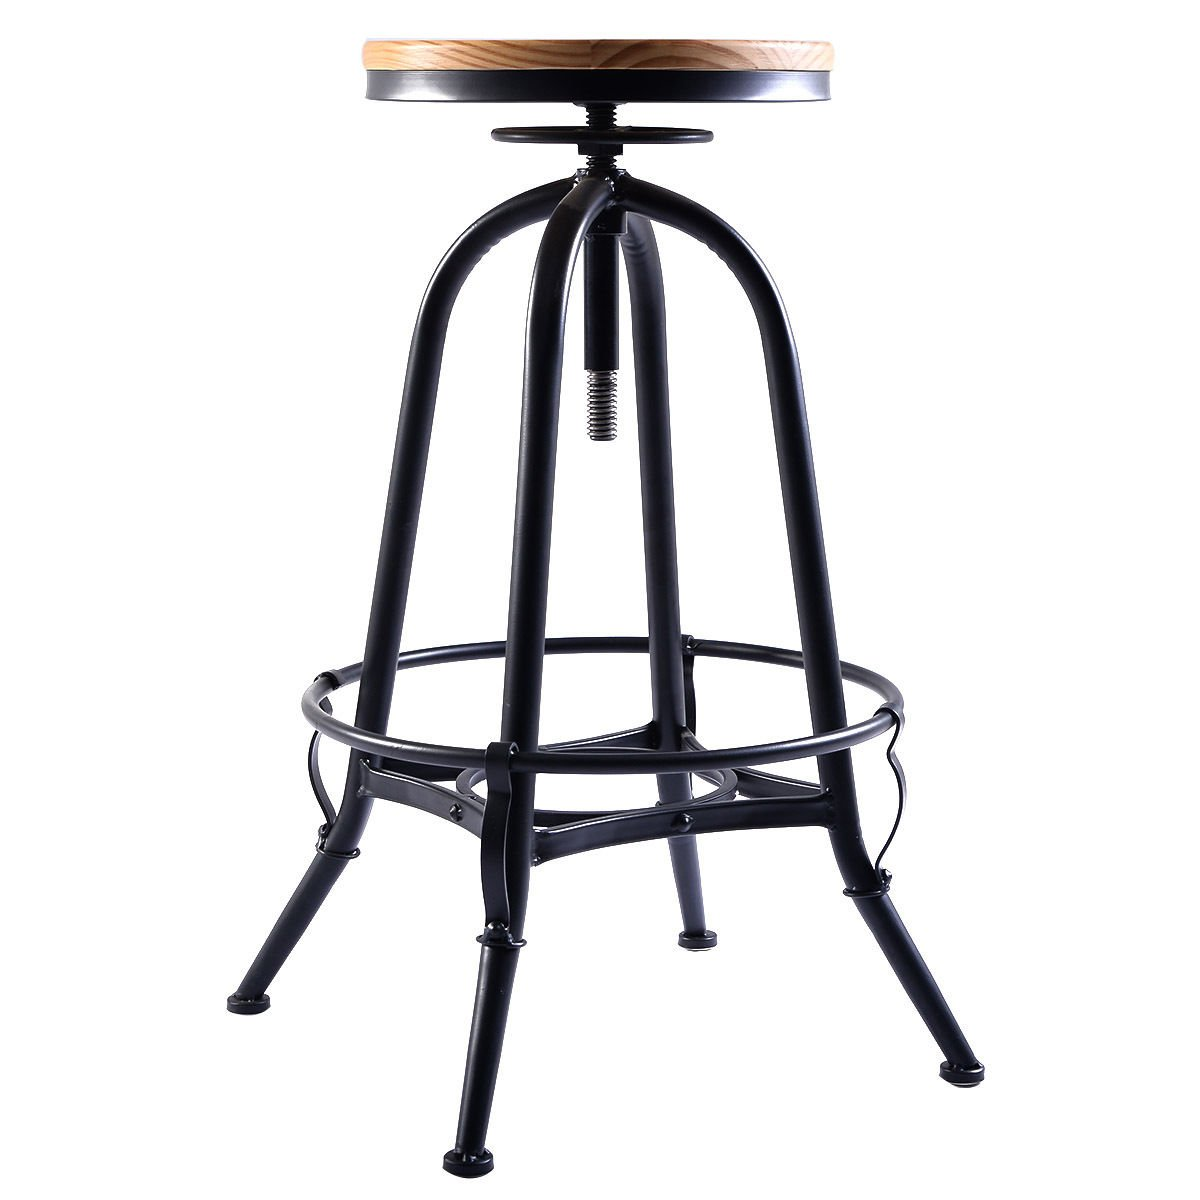 Costway Vintage Bar Stool Metal Frame Wood Top Adjustable